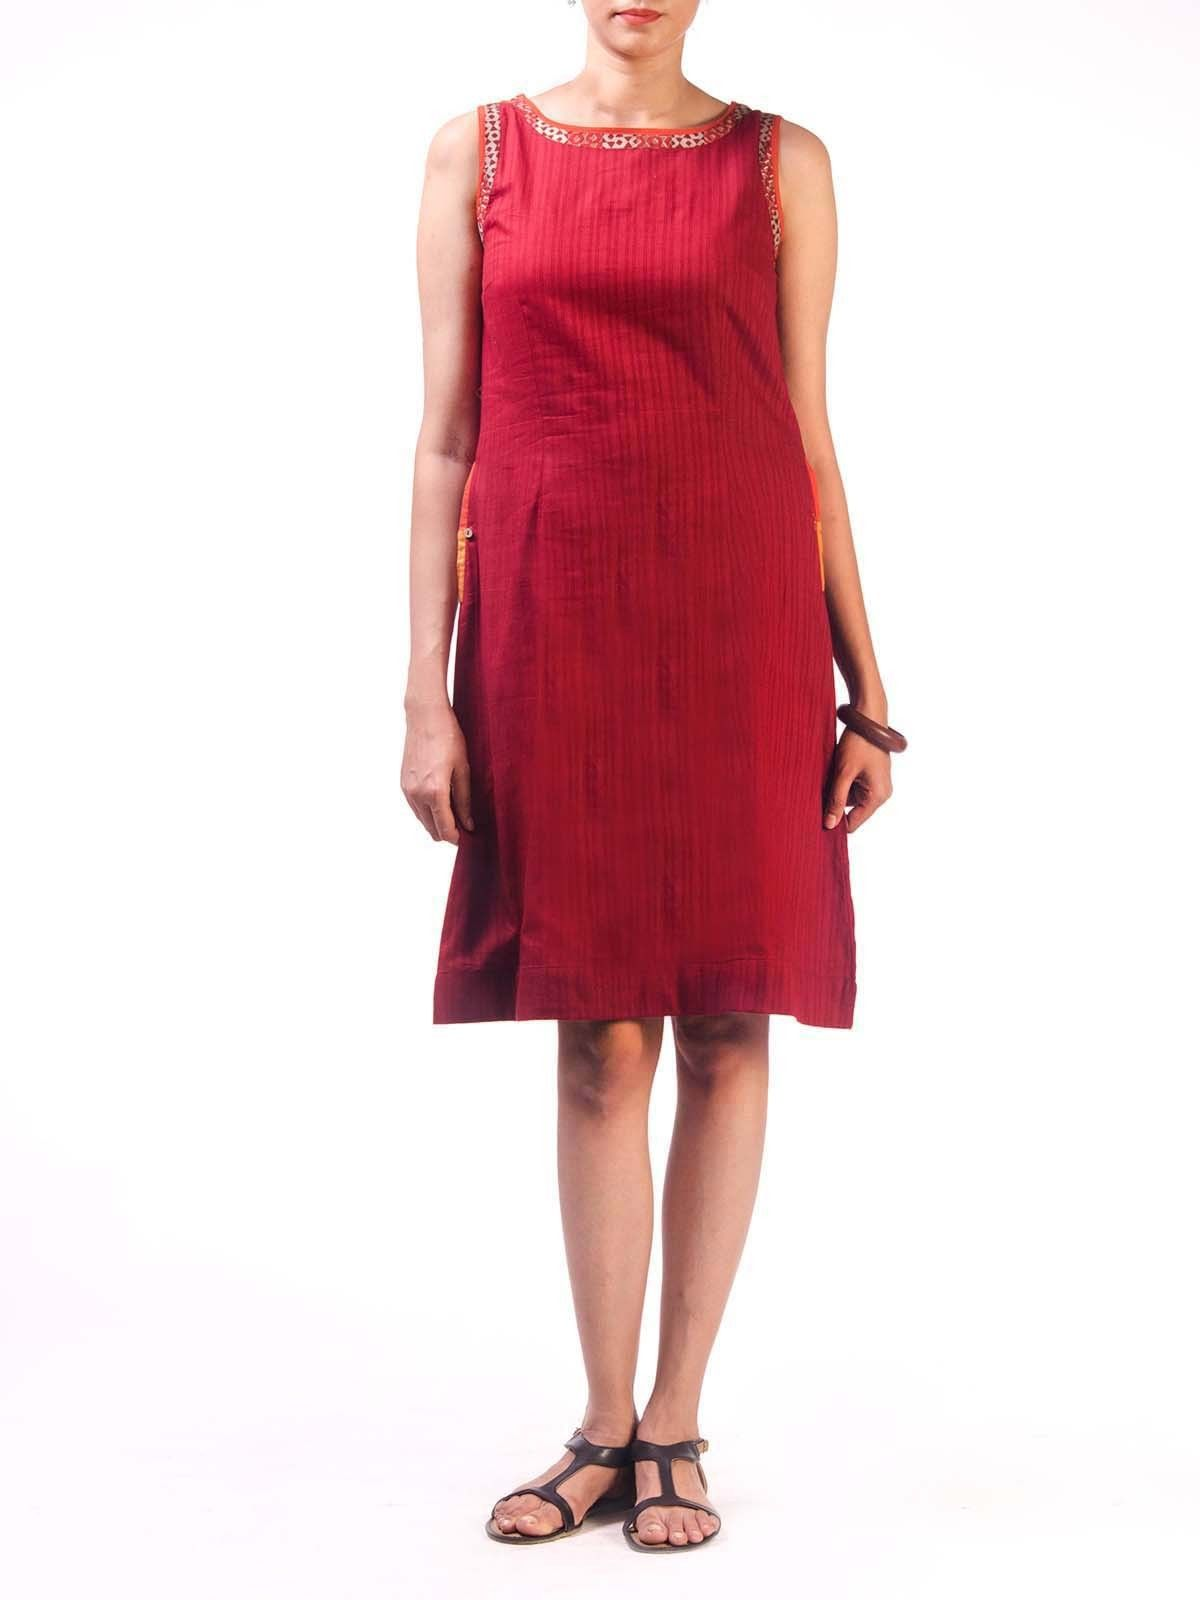 Maroon Cotton Short Dress with Pocket Detail